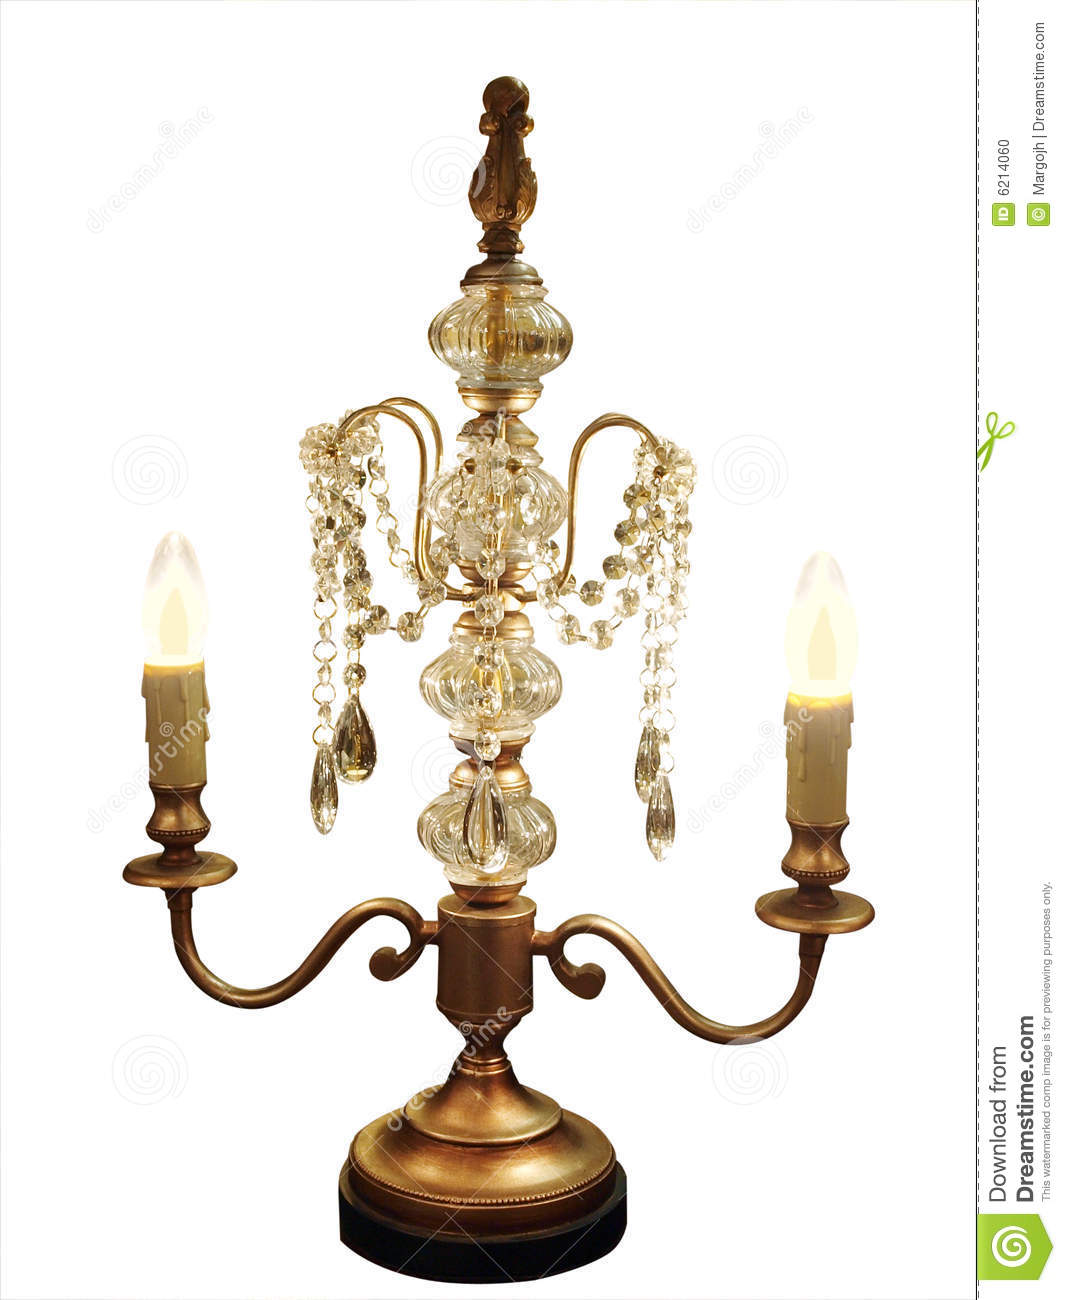 Ornate table lamp chandelier stock photo image 6214060 - Chandelier desk lamp ...